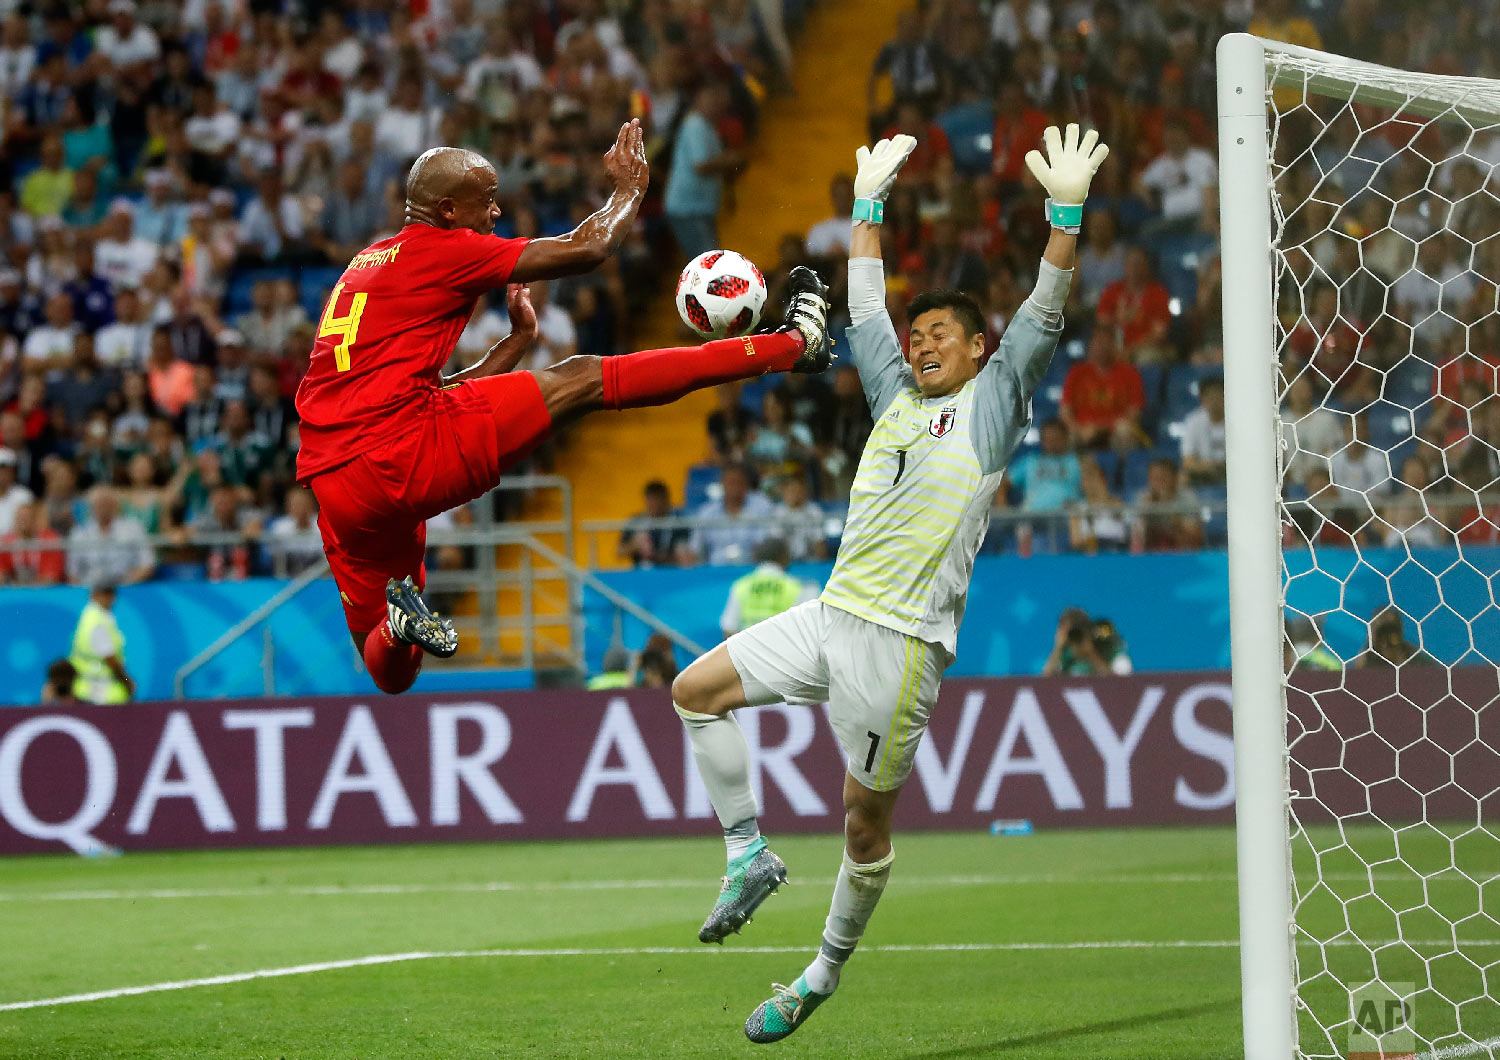 Belgium's Vincent Kompany jumps for the ball in front of Japan goalkeeper Eiji Kawashima during the round of 16 match between Belgium and Japan at the 2018 soccer World Cup in the Rostov Arena, in Rostov-on-Don, Russia on July 2, 2018. (AP Photo/Petr David Josek)